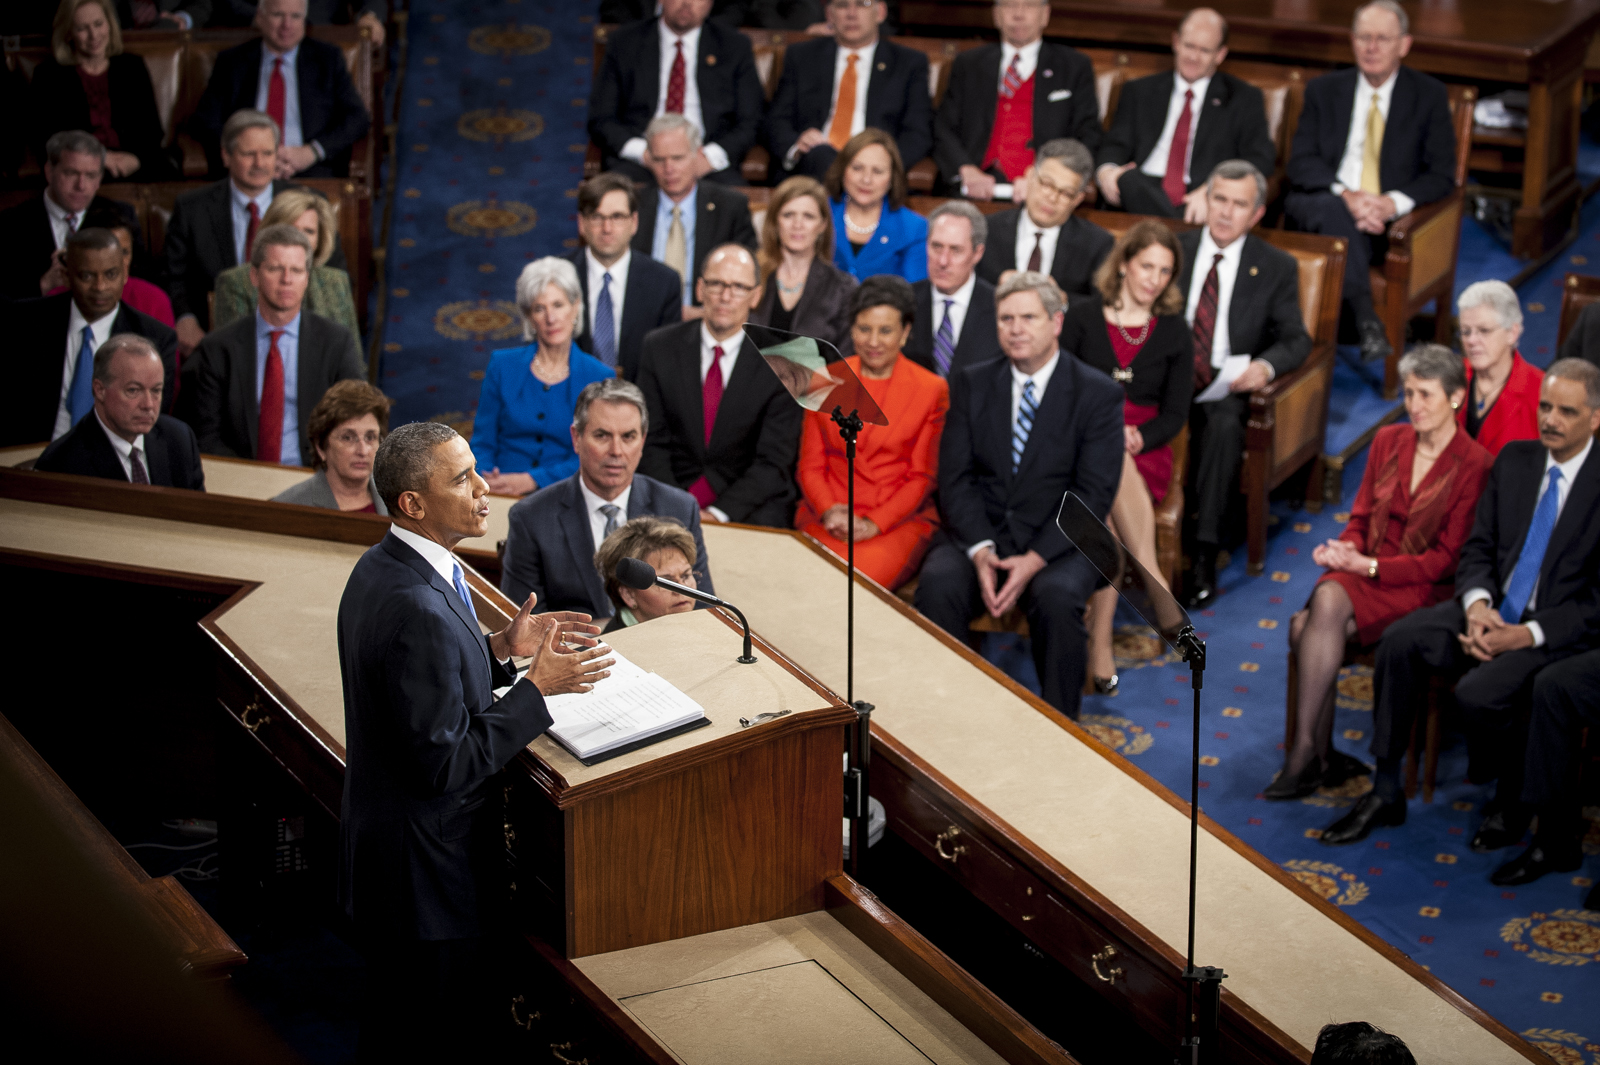 U.S. President Barack Obama delivers the State of the Union address to a joint session of Congress at the Capitol in Washington, D.C., U.S., on Tuesday, Jan. 28, 2014. Photographer: Pete Marovich/Bloomberg